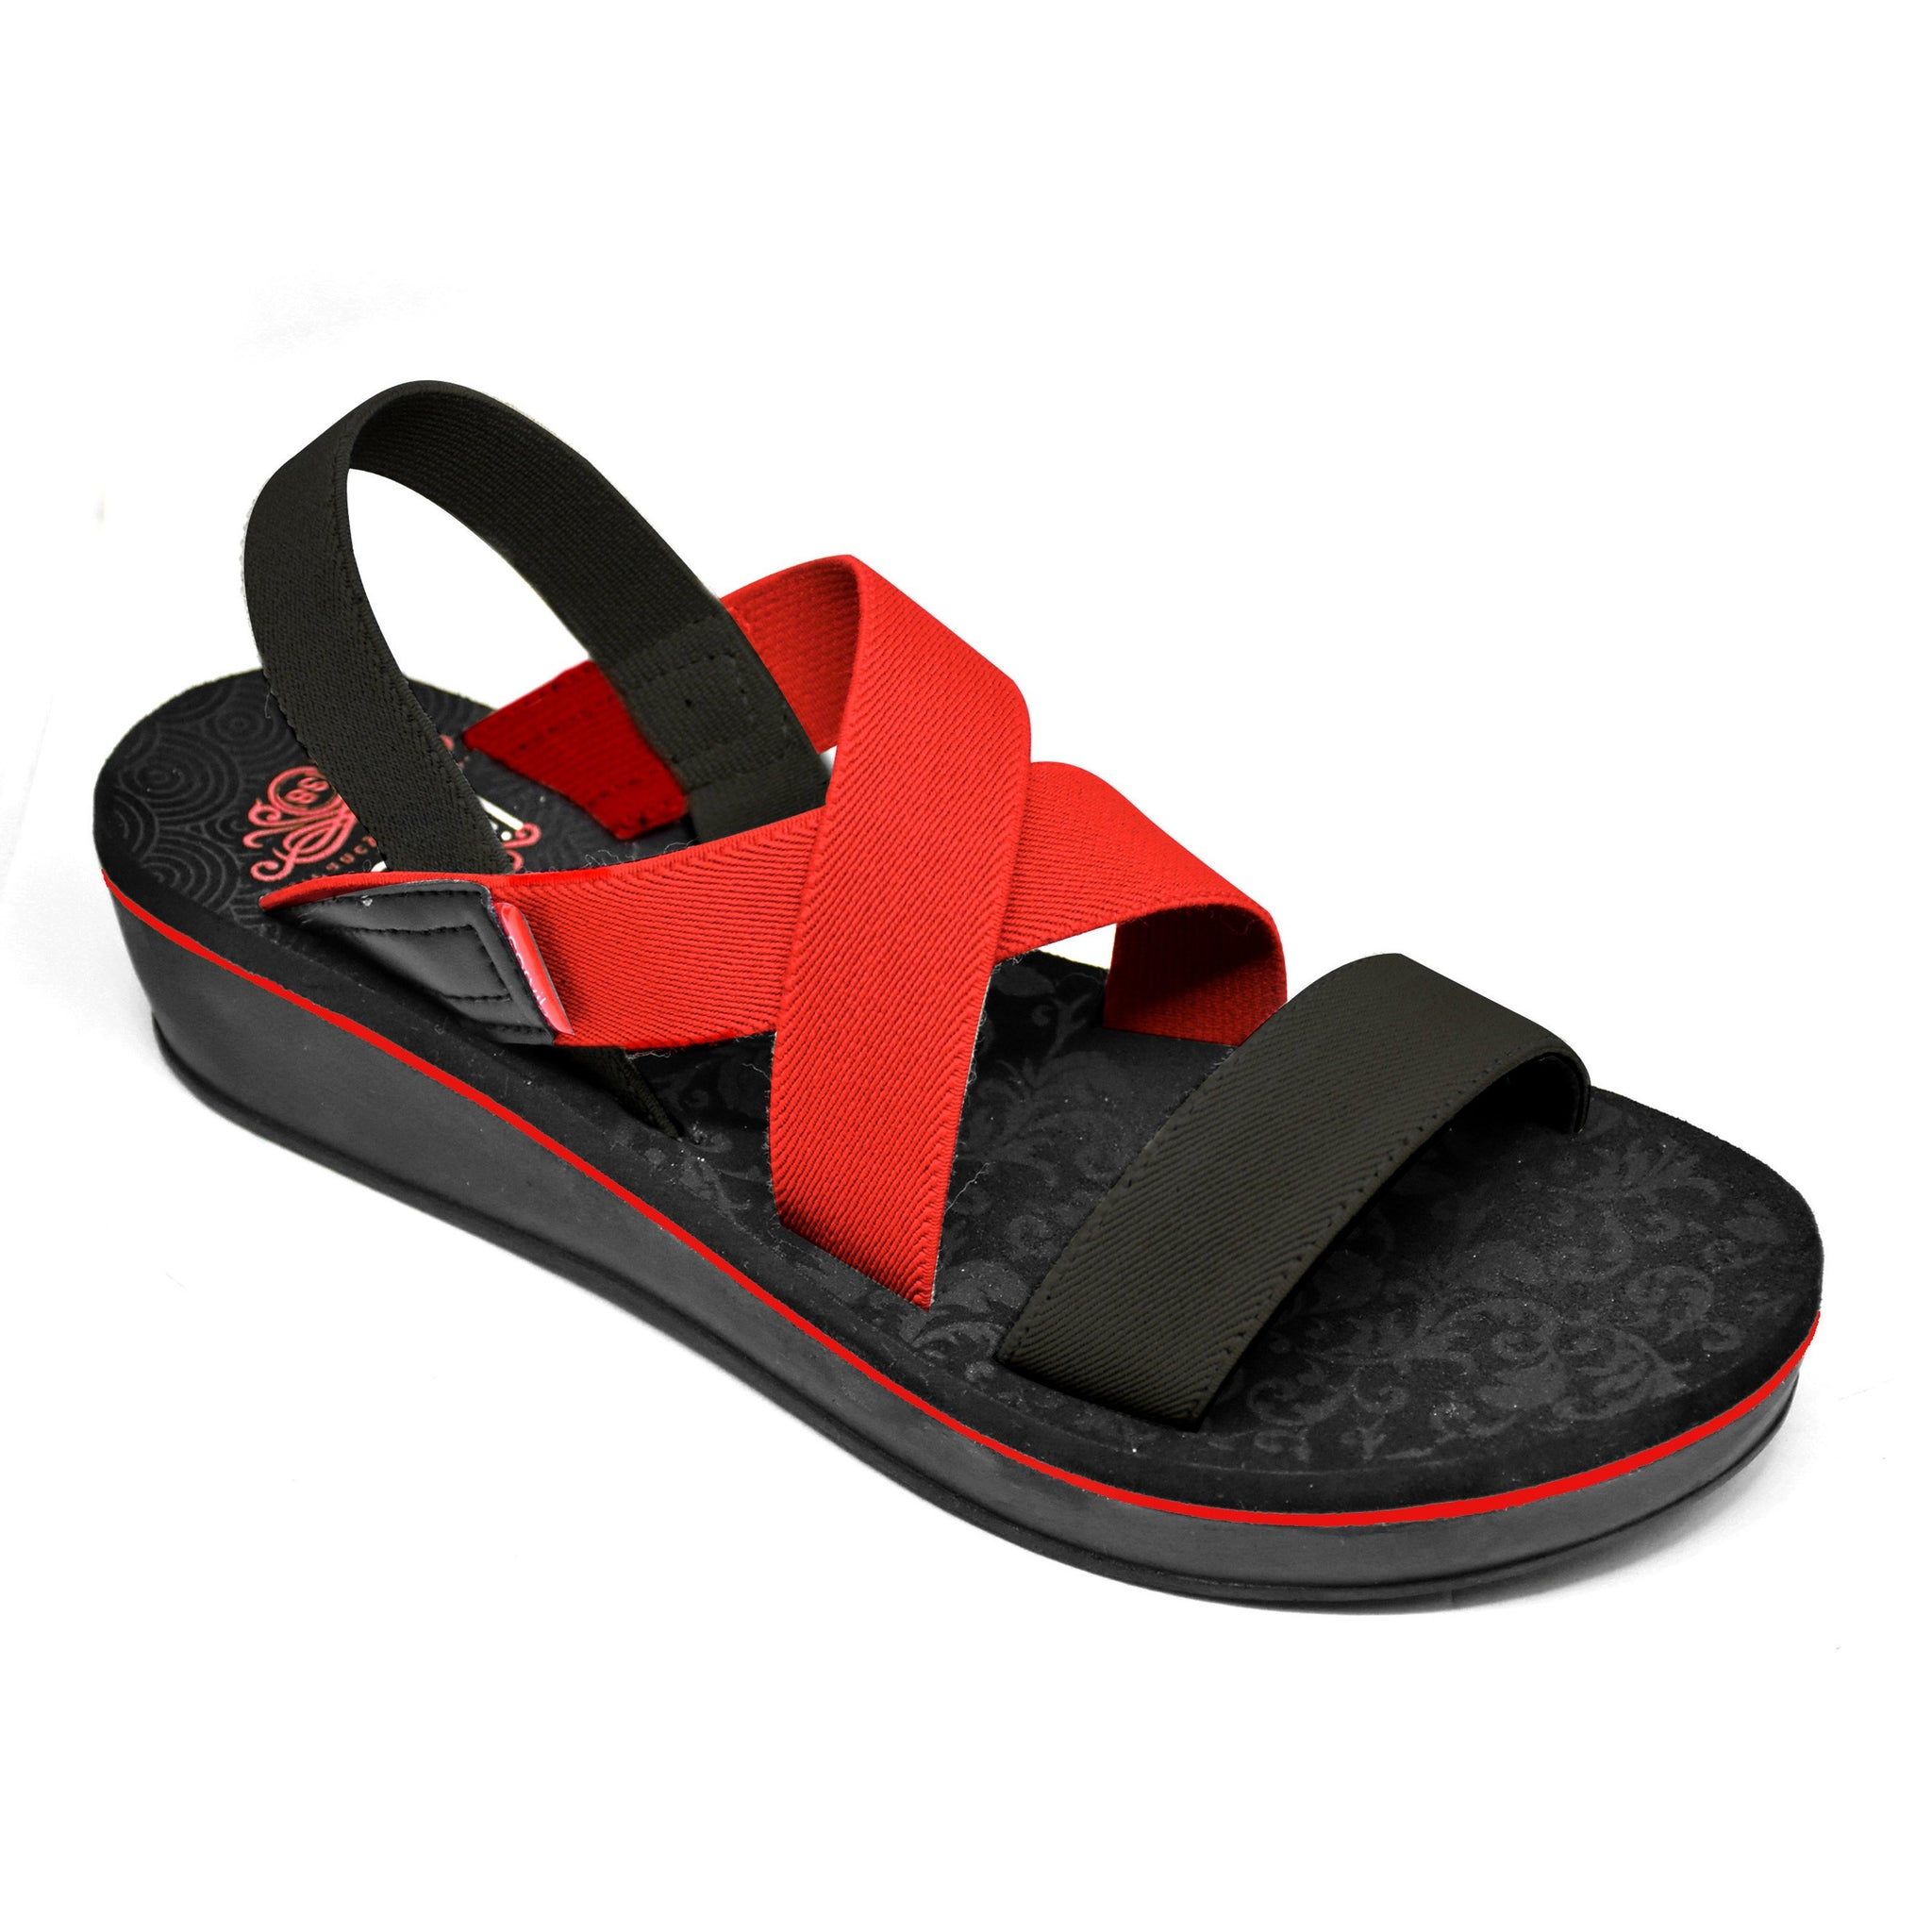 Carvil Sandal Wanita LUCY-03 GL-BLACK/RED